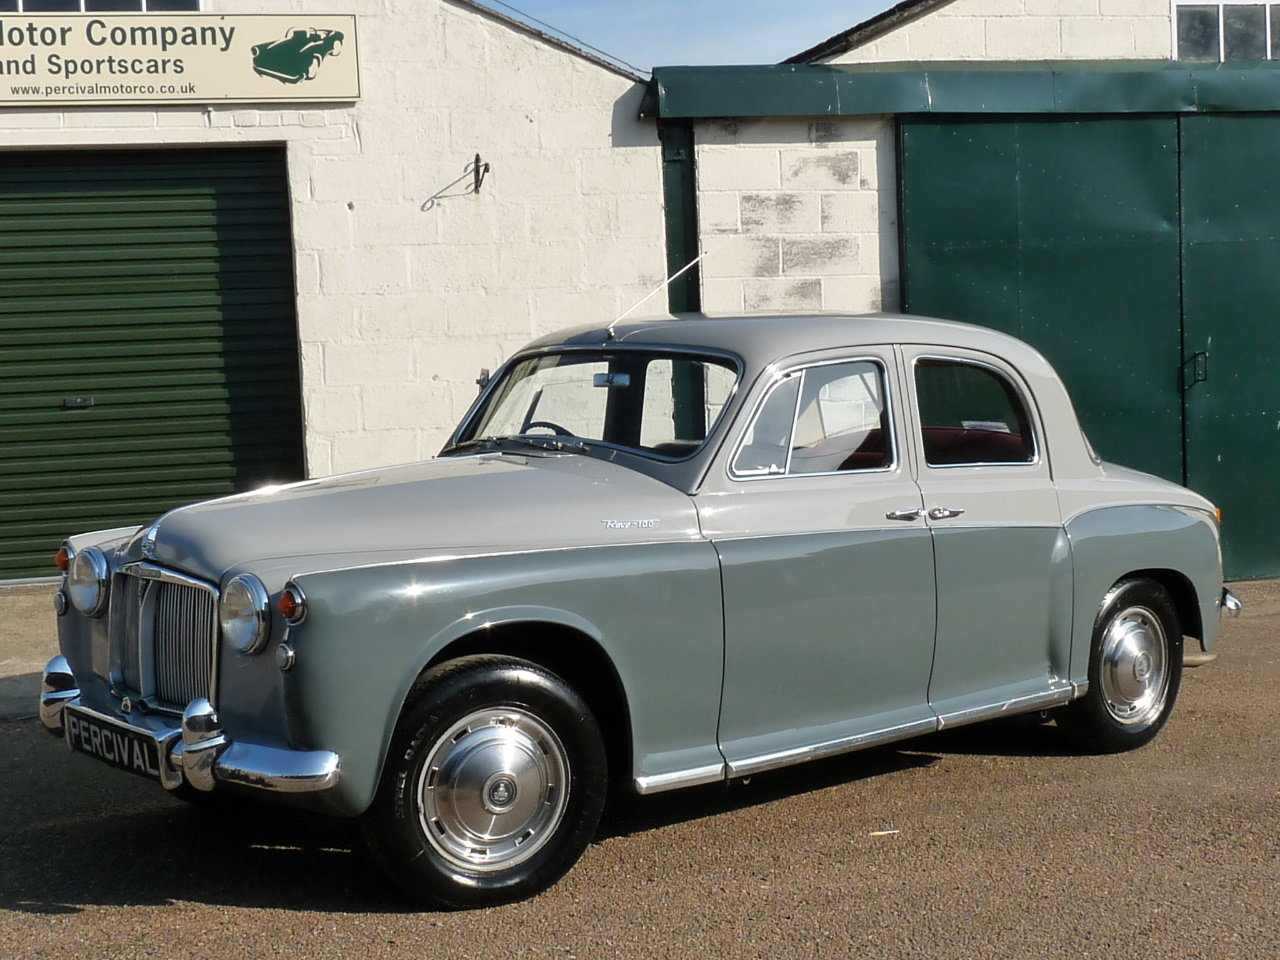 1960 Rover 100 P4, 3.0 litre Rover P5 engine fitted, Sold SOLD (picture 1 of 6)